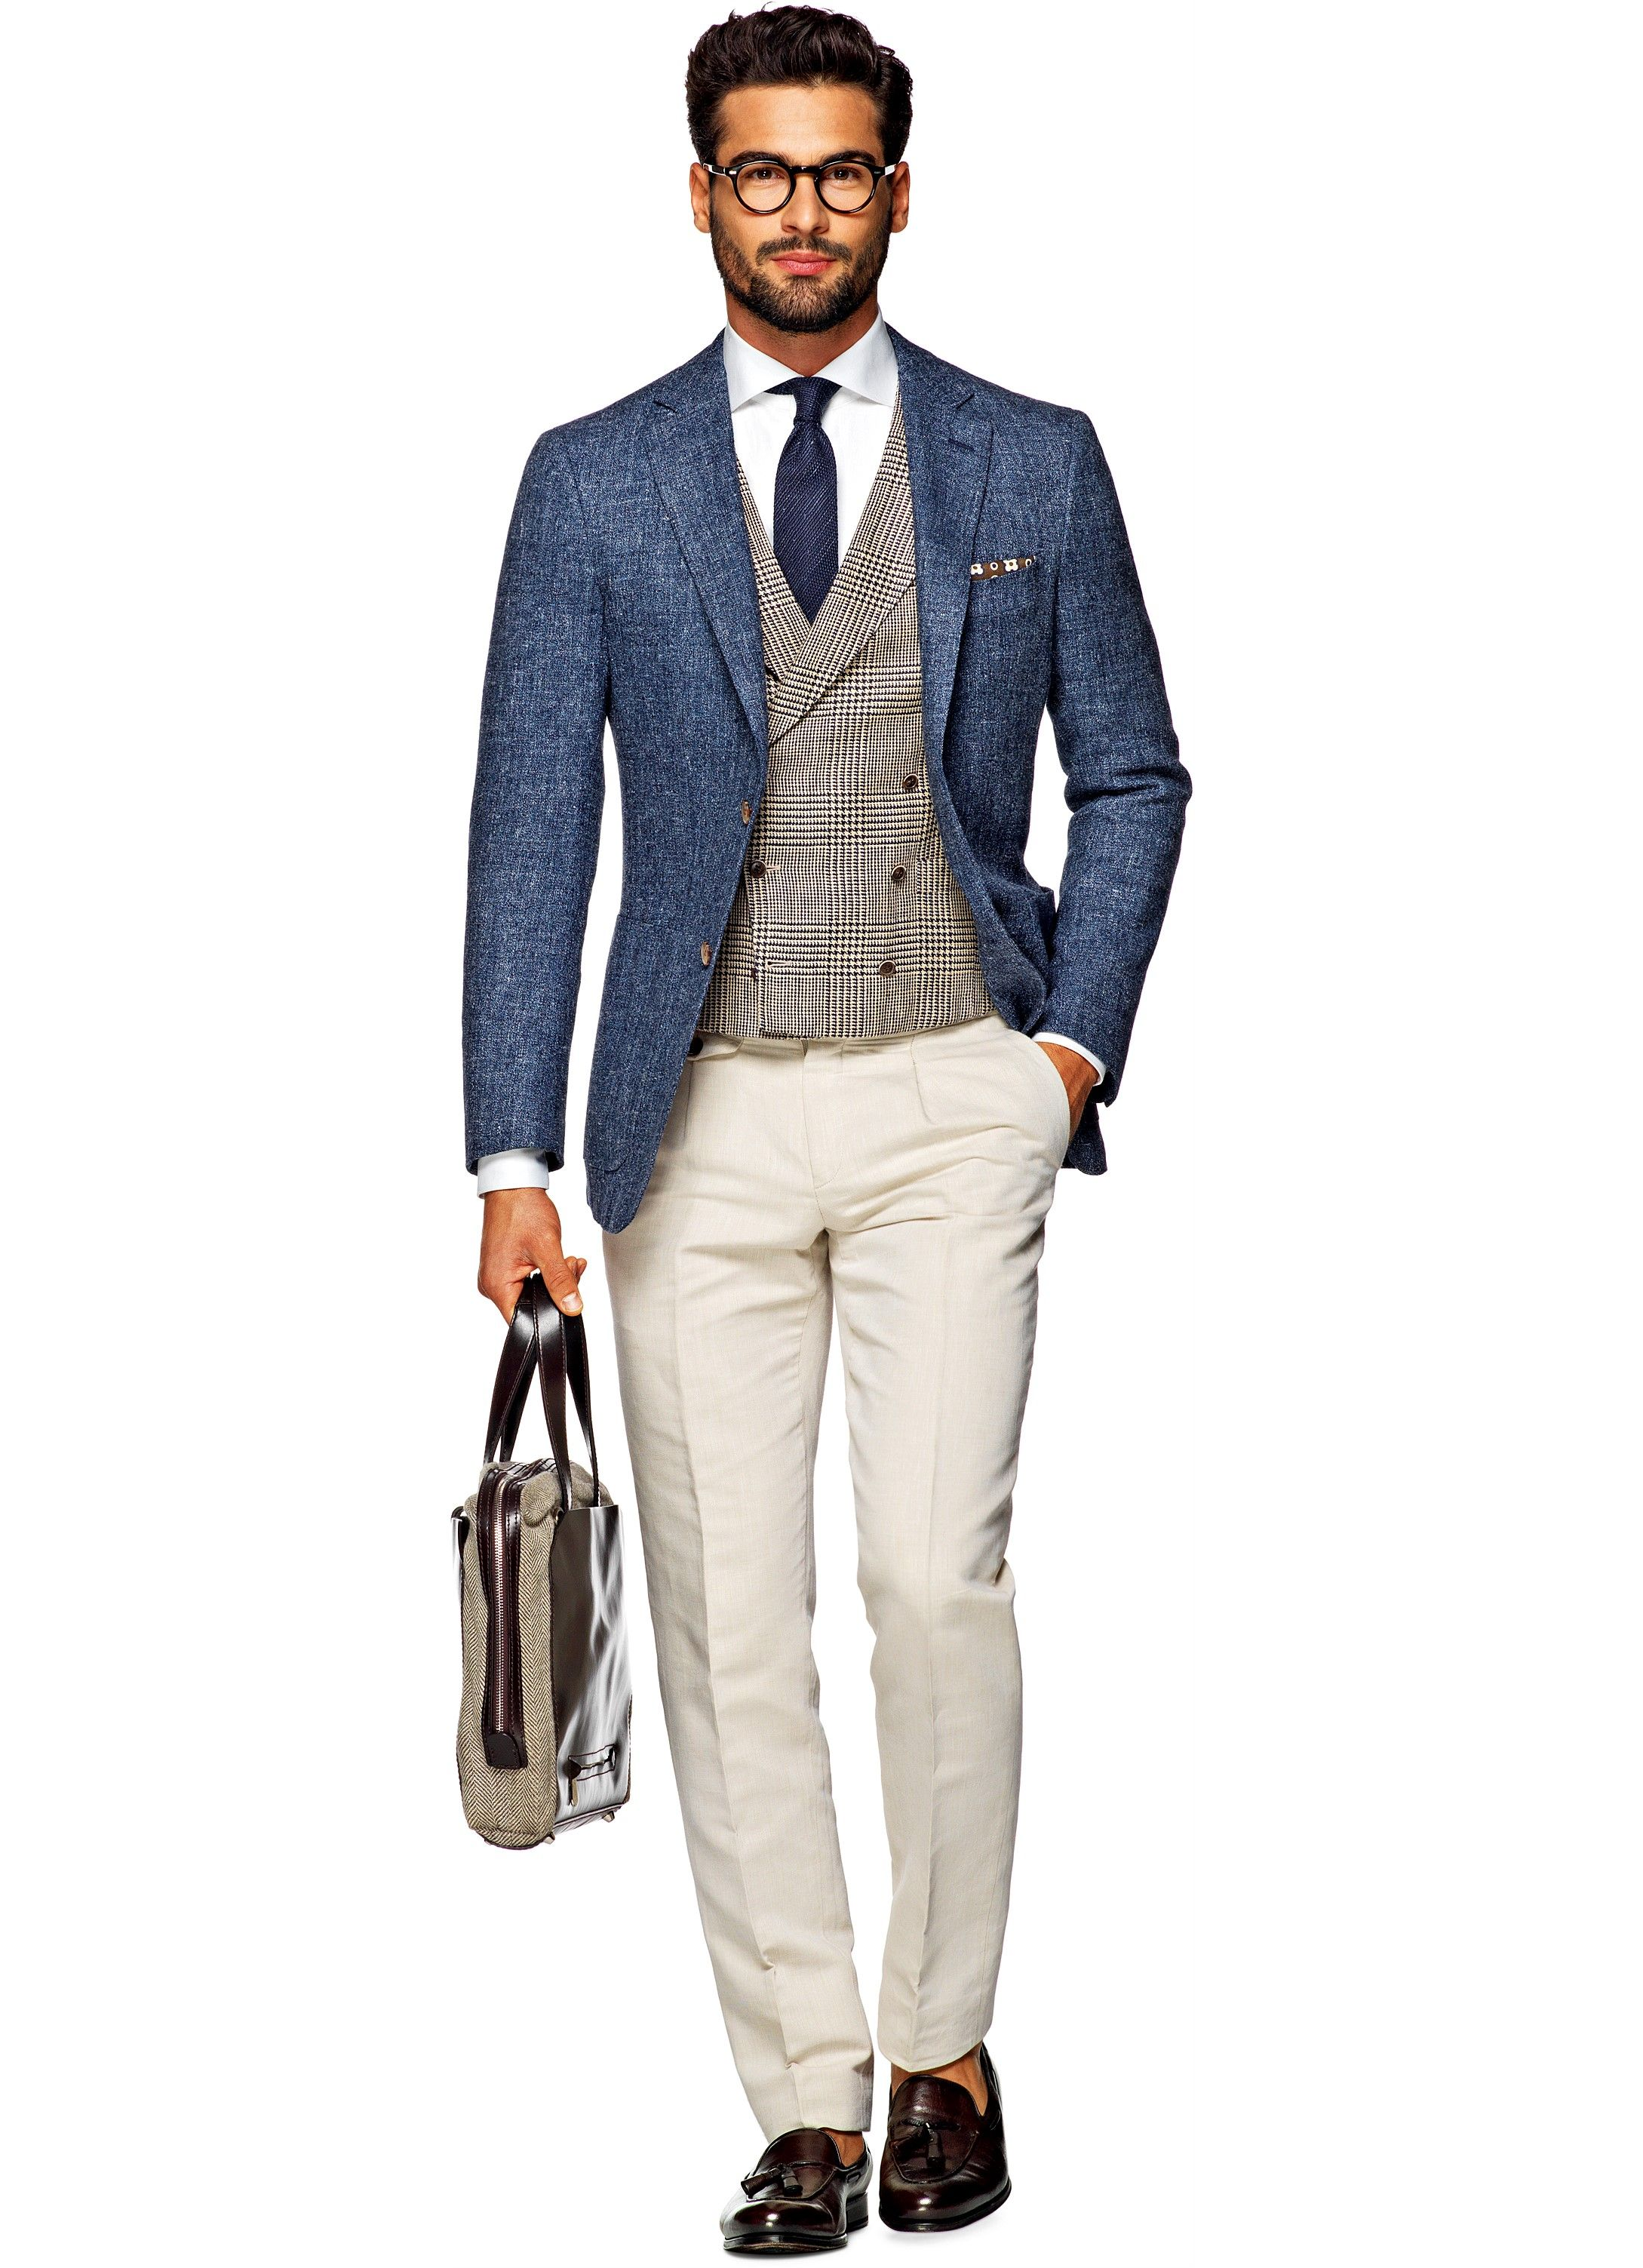 d4fd843c05247 Suitsupply Havana Jacket in Linen-Wook-Mohair-Silk. This refined blend of  wool, linen, silk, and mohair is silky to the touch, lightweight, ...